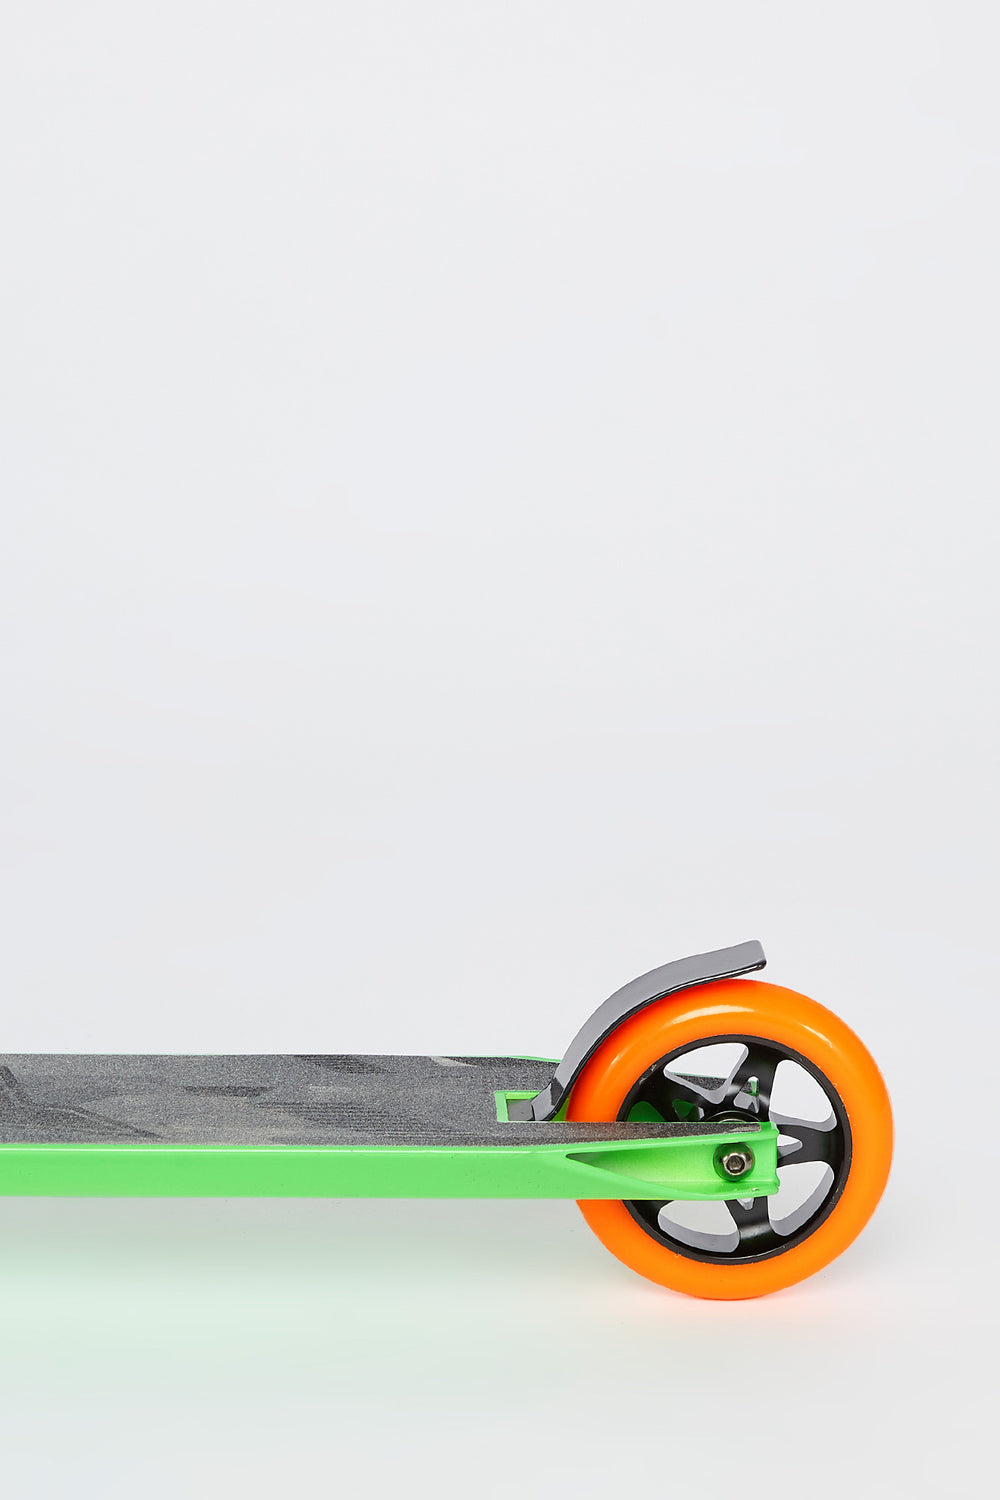 Green Pivot X-Ride S Scooter Green